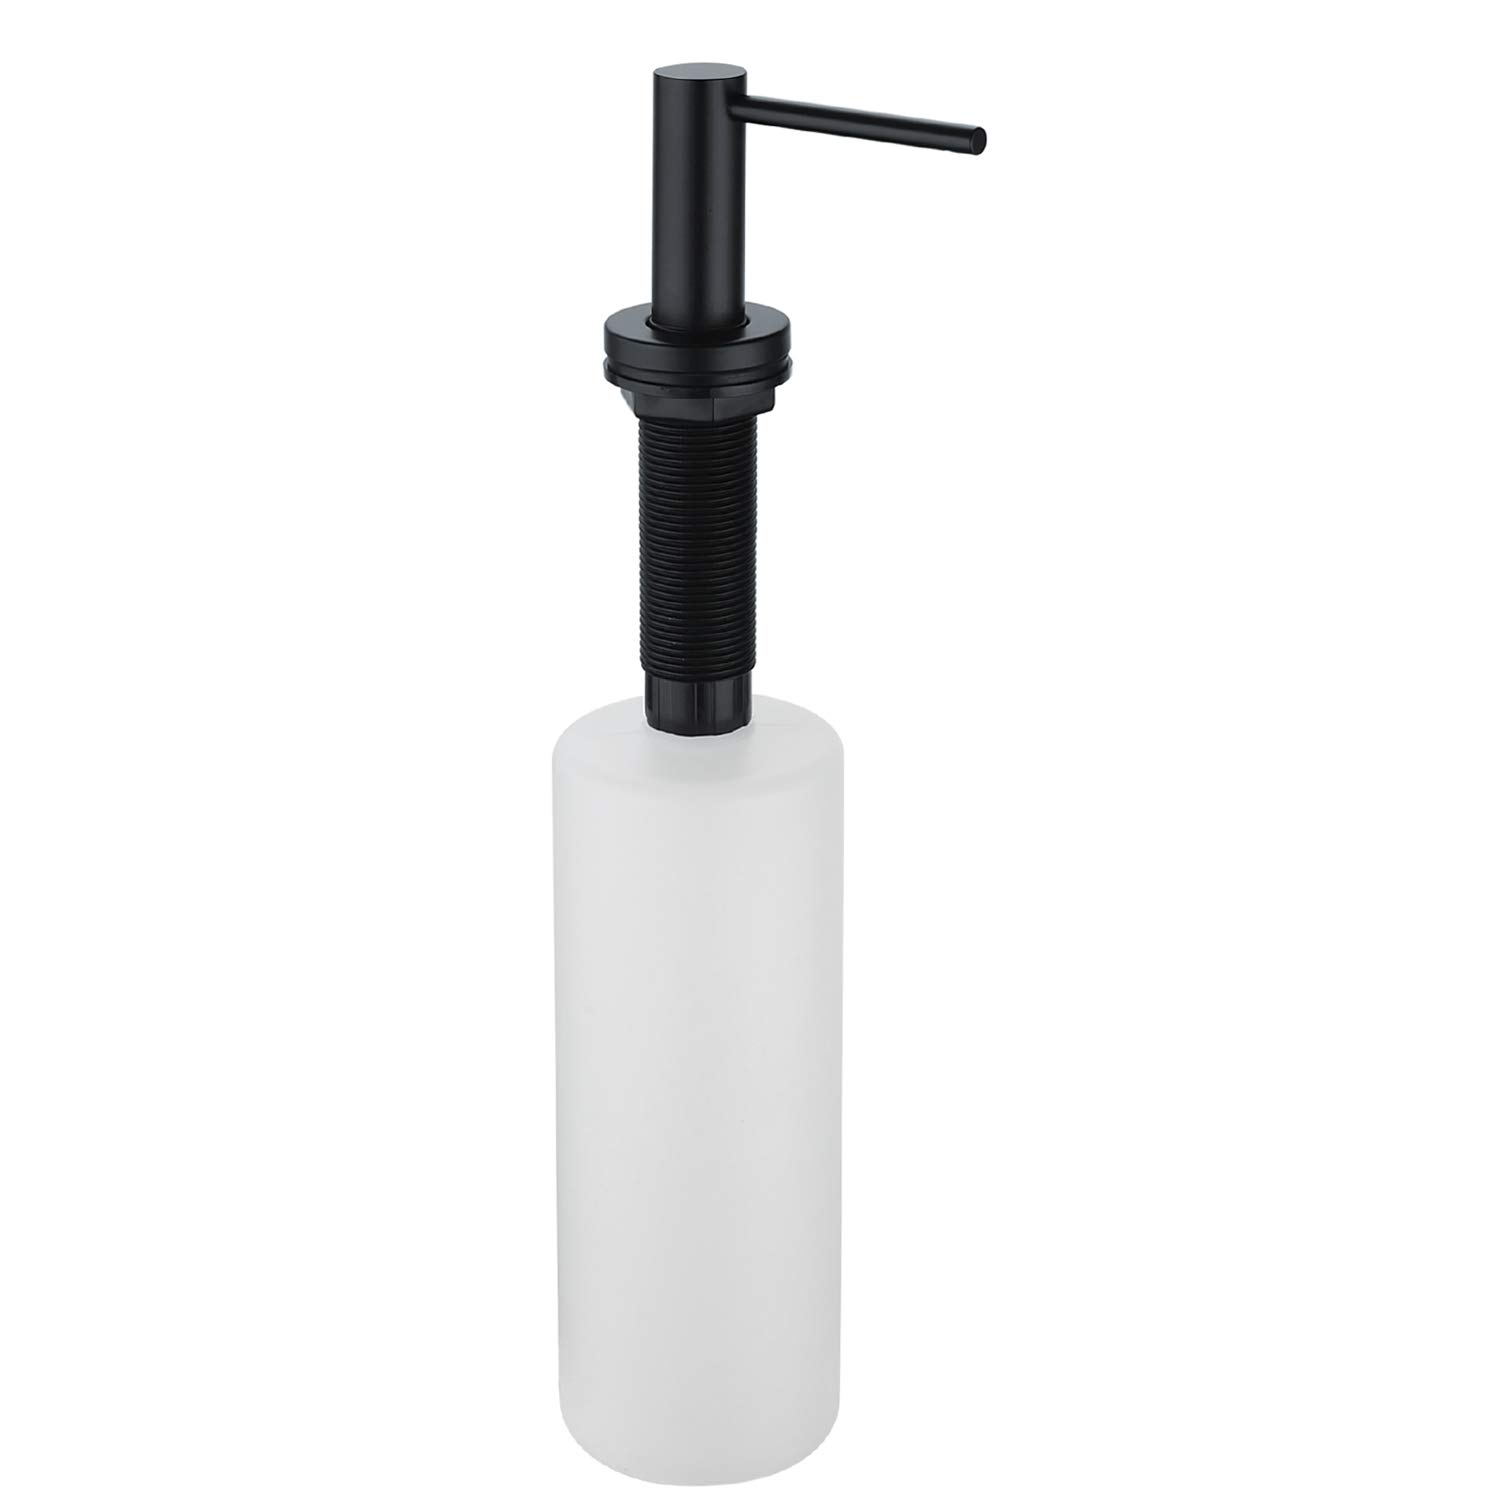 Wasserrhythm Matte Black Built In Kitchen Sink Soap and Lotion Dispenser 17oz by Wasserrhythm (Image #5)